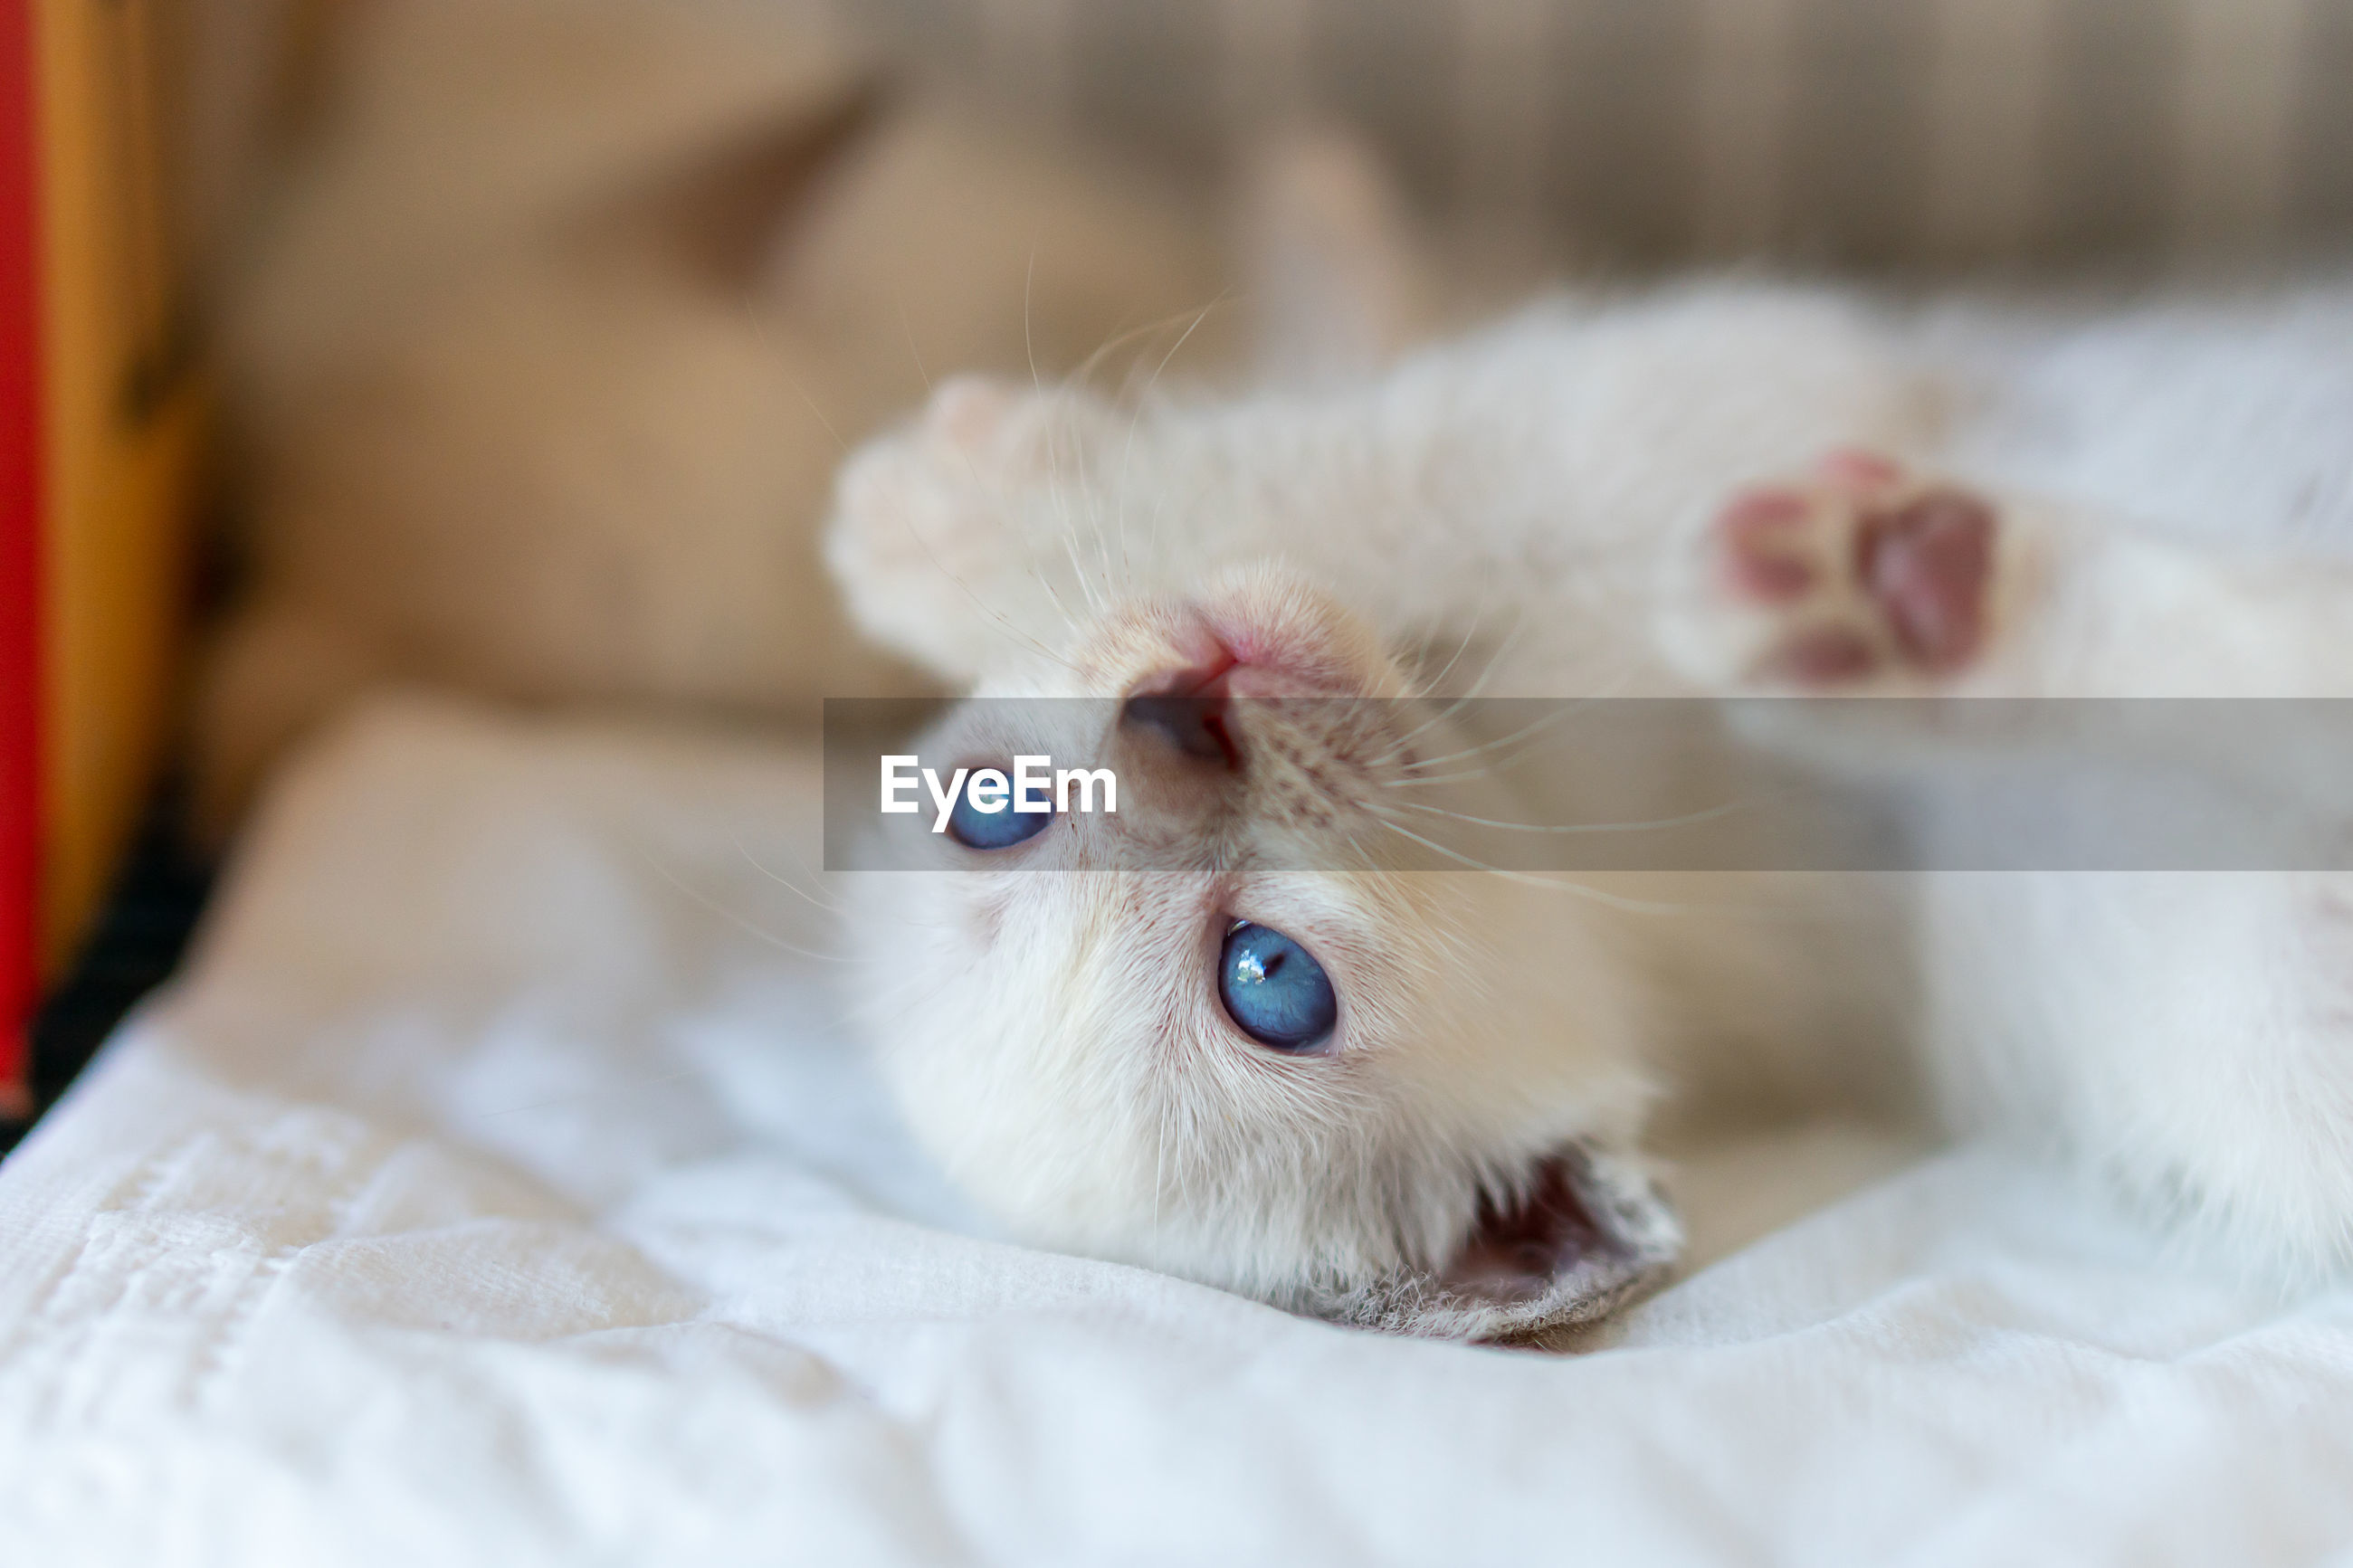 Close-up of kitten looking away on bed